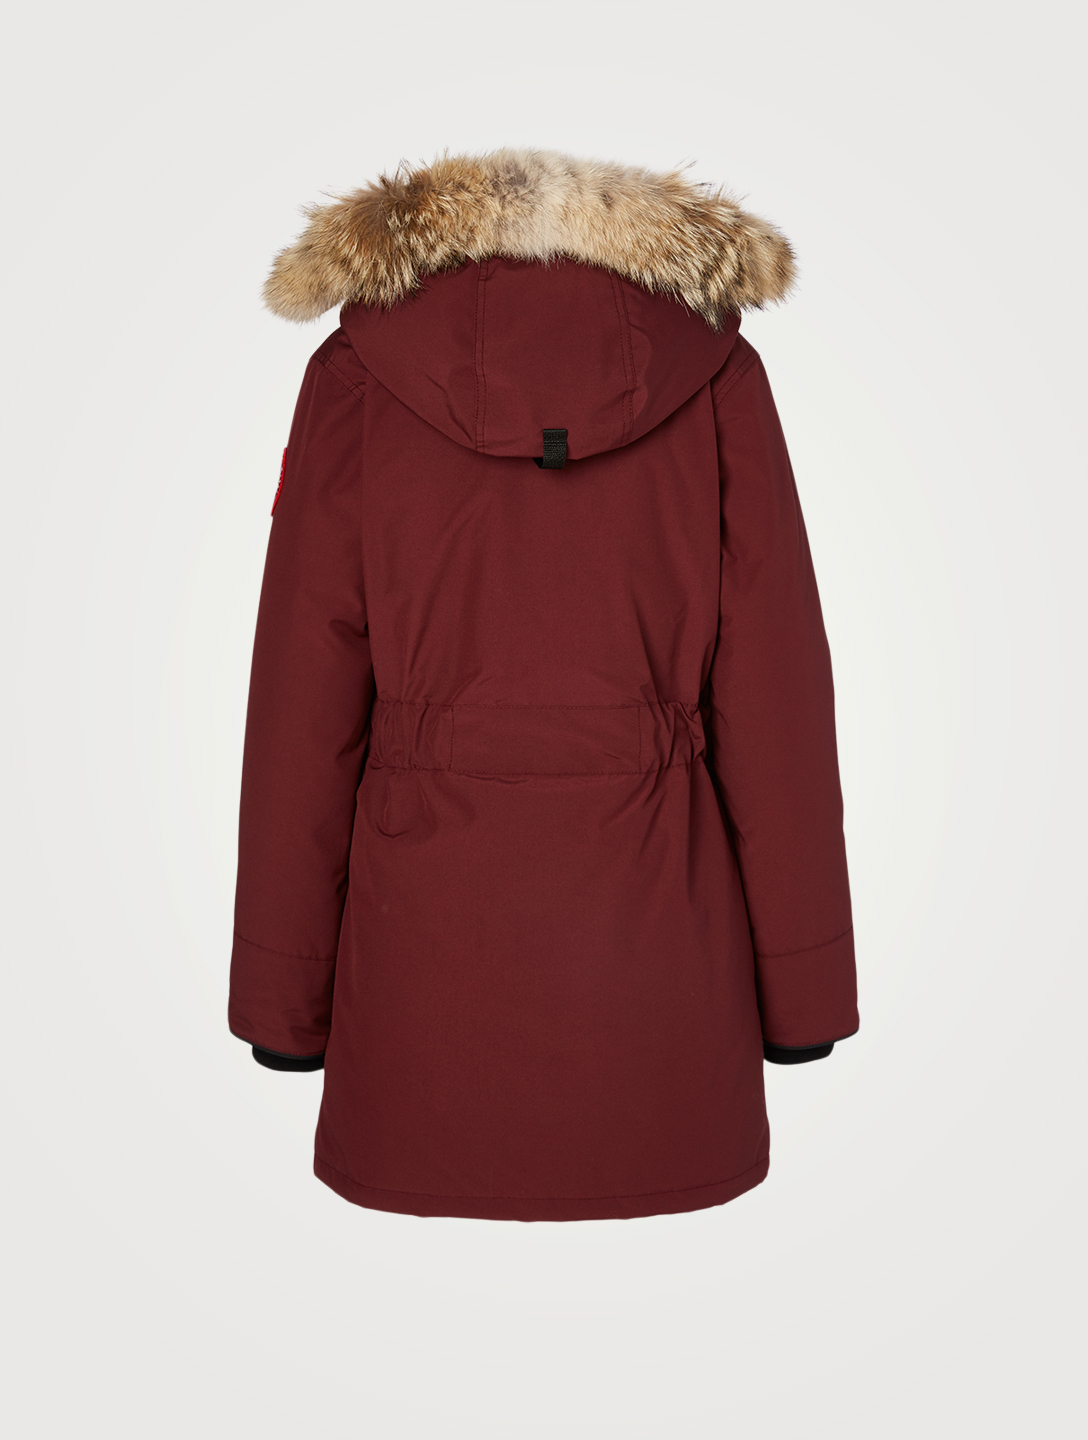 CANADA GOOSE Trillium Down Parka With Fur Hood Women's Red